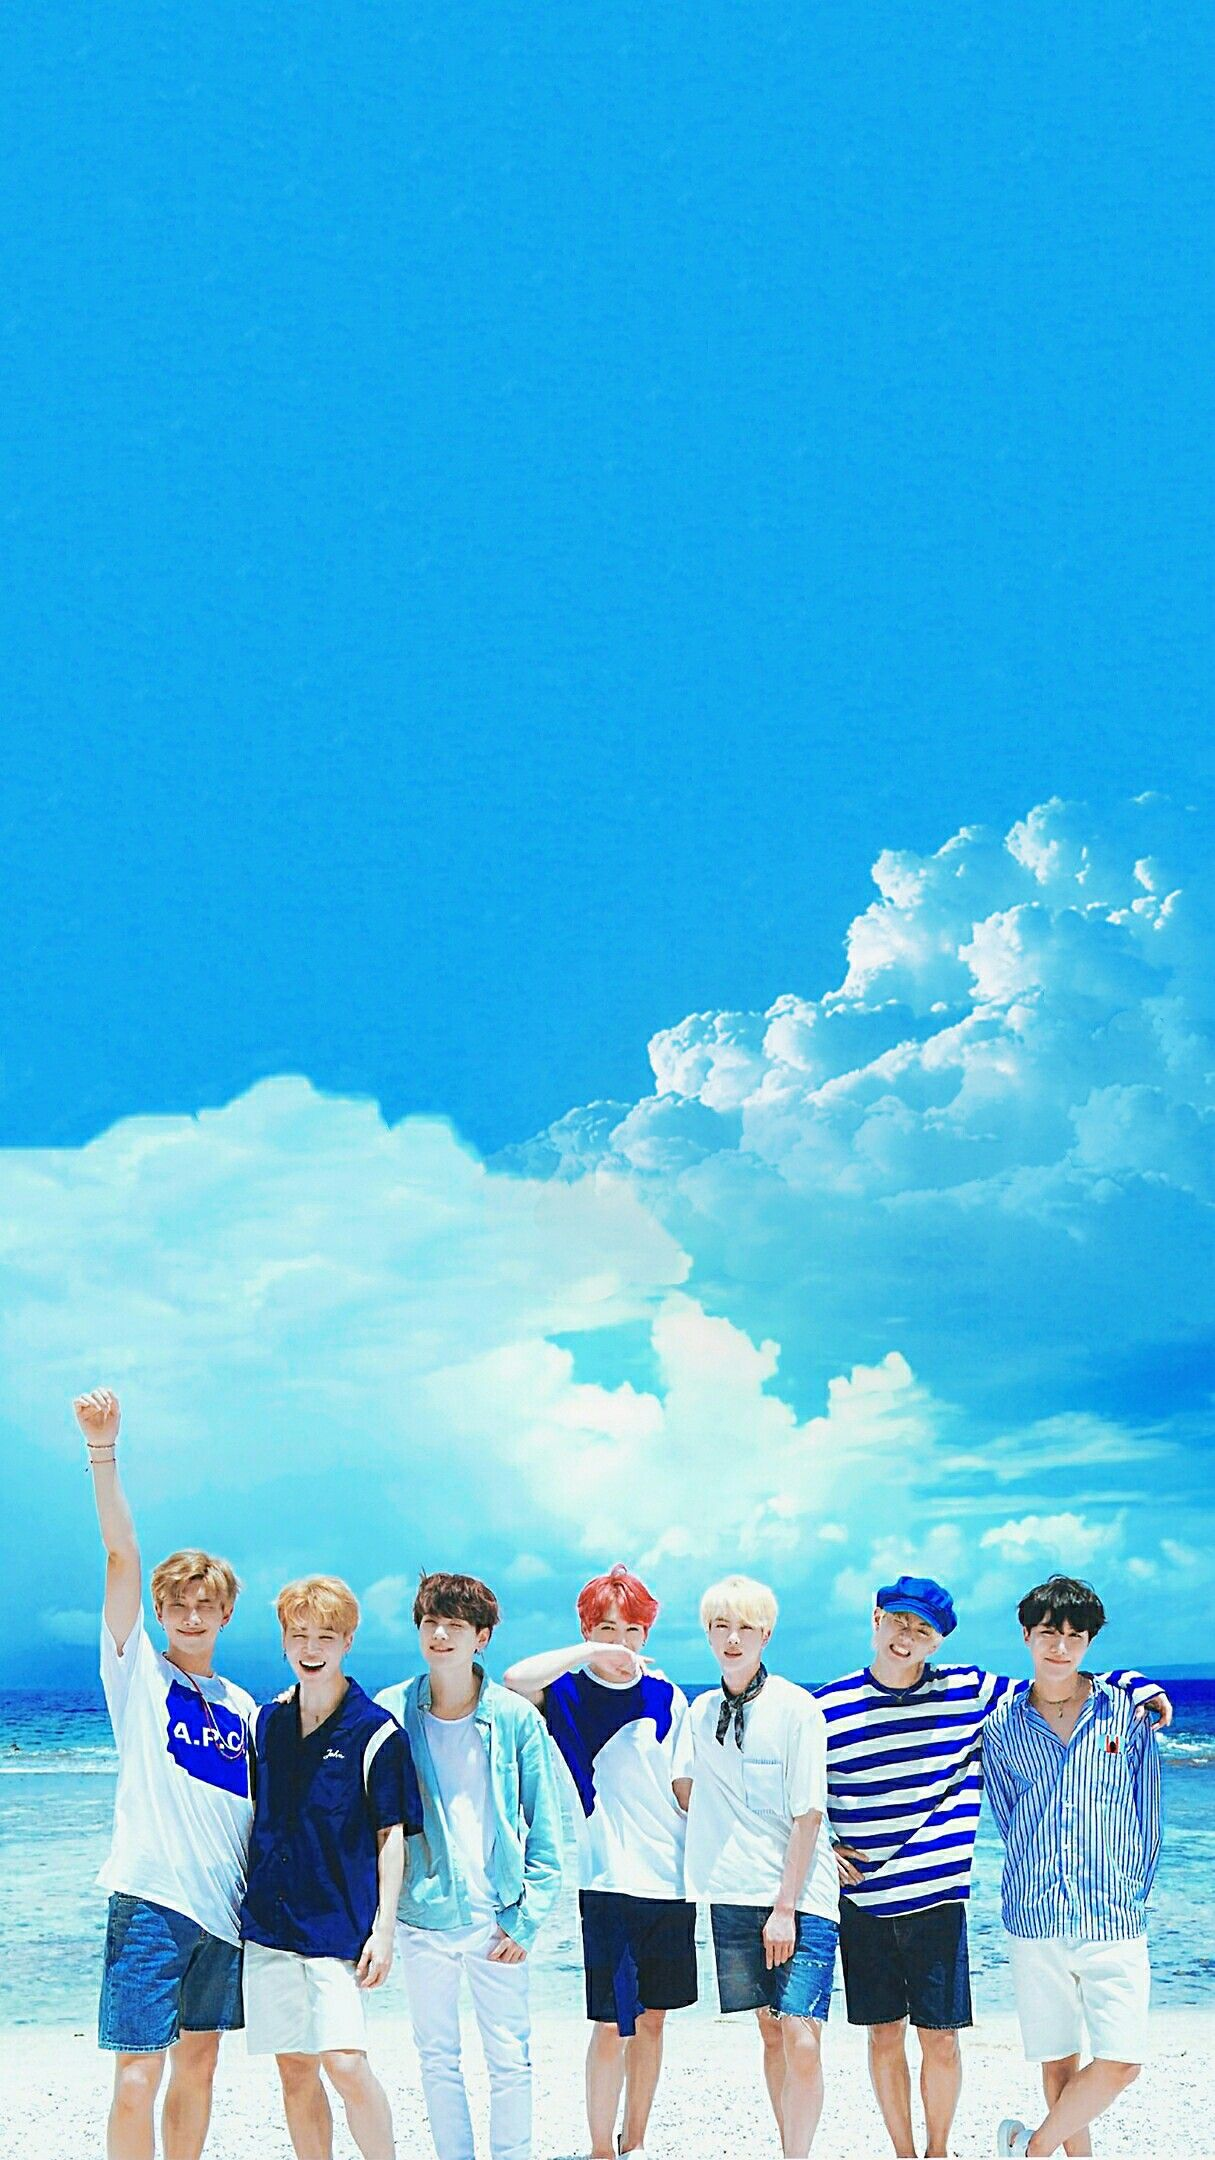 Bts Edits Bts Wallpapers Bts 2018 Summer Package In Saipan Pls Make Sure To Follow Me Before U Save It Find More Bts Backgrounds Bts Wallpaper Foto Bts Bts summer package wallpaper lockscreen